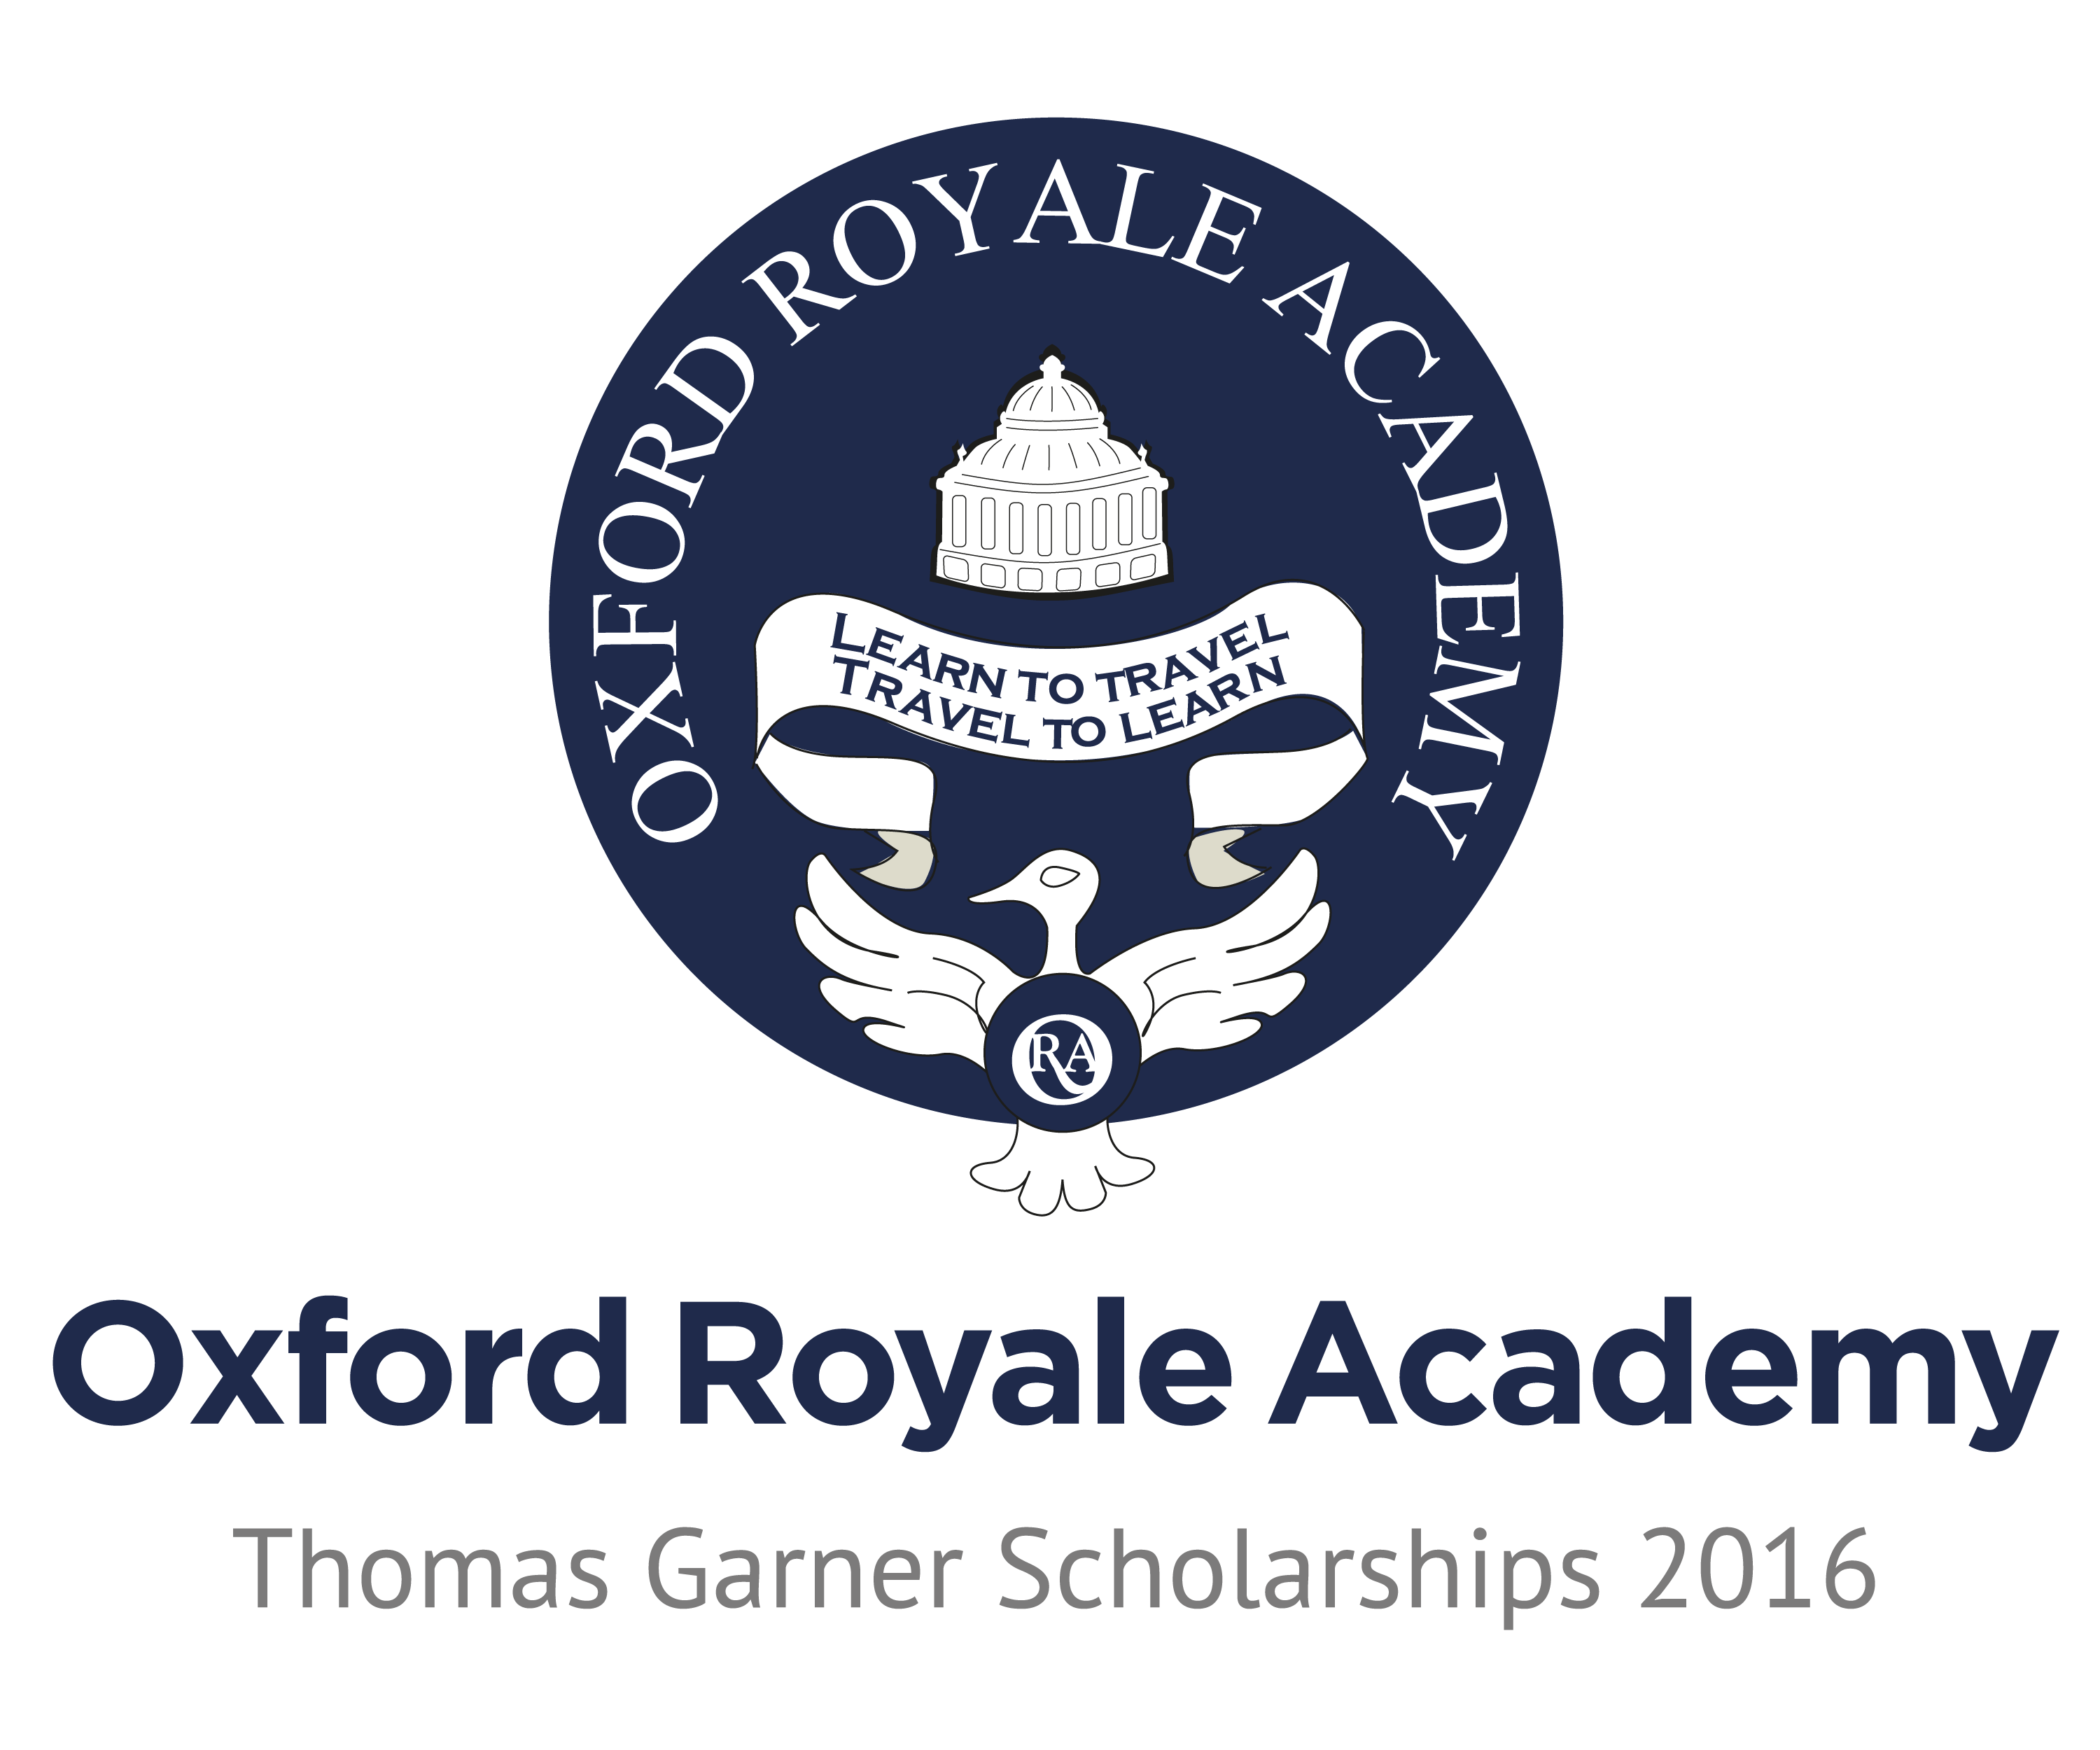 October 2015 st clare 39 s careers page 2 for Oxford royale academy